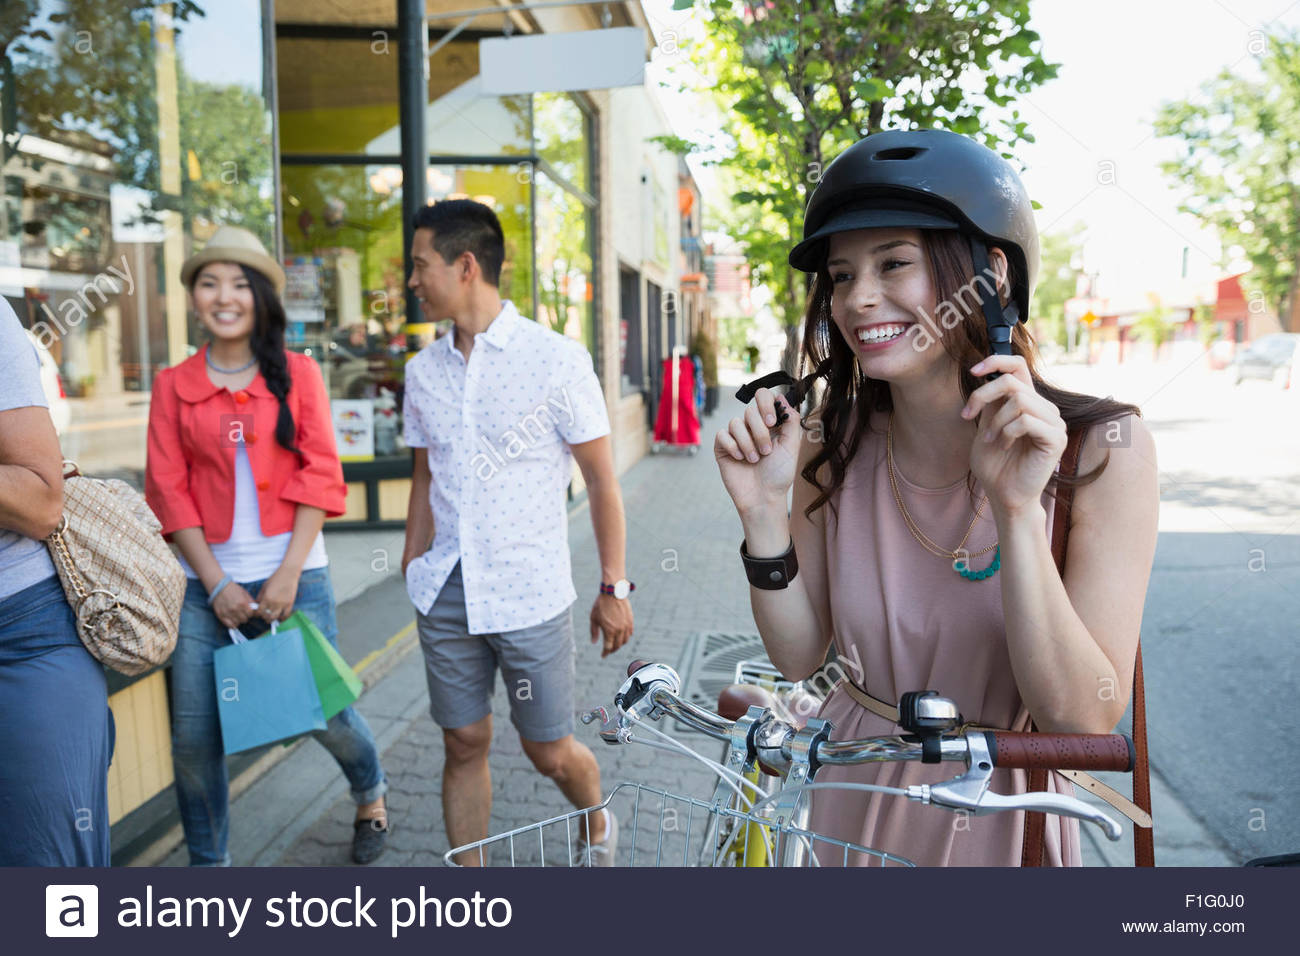 Smiling woman with bicycle putting on helmet - Stock Image